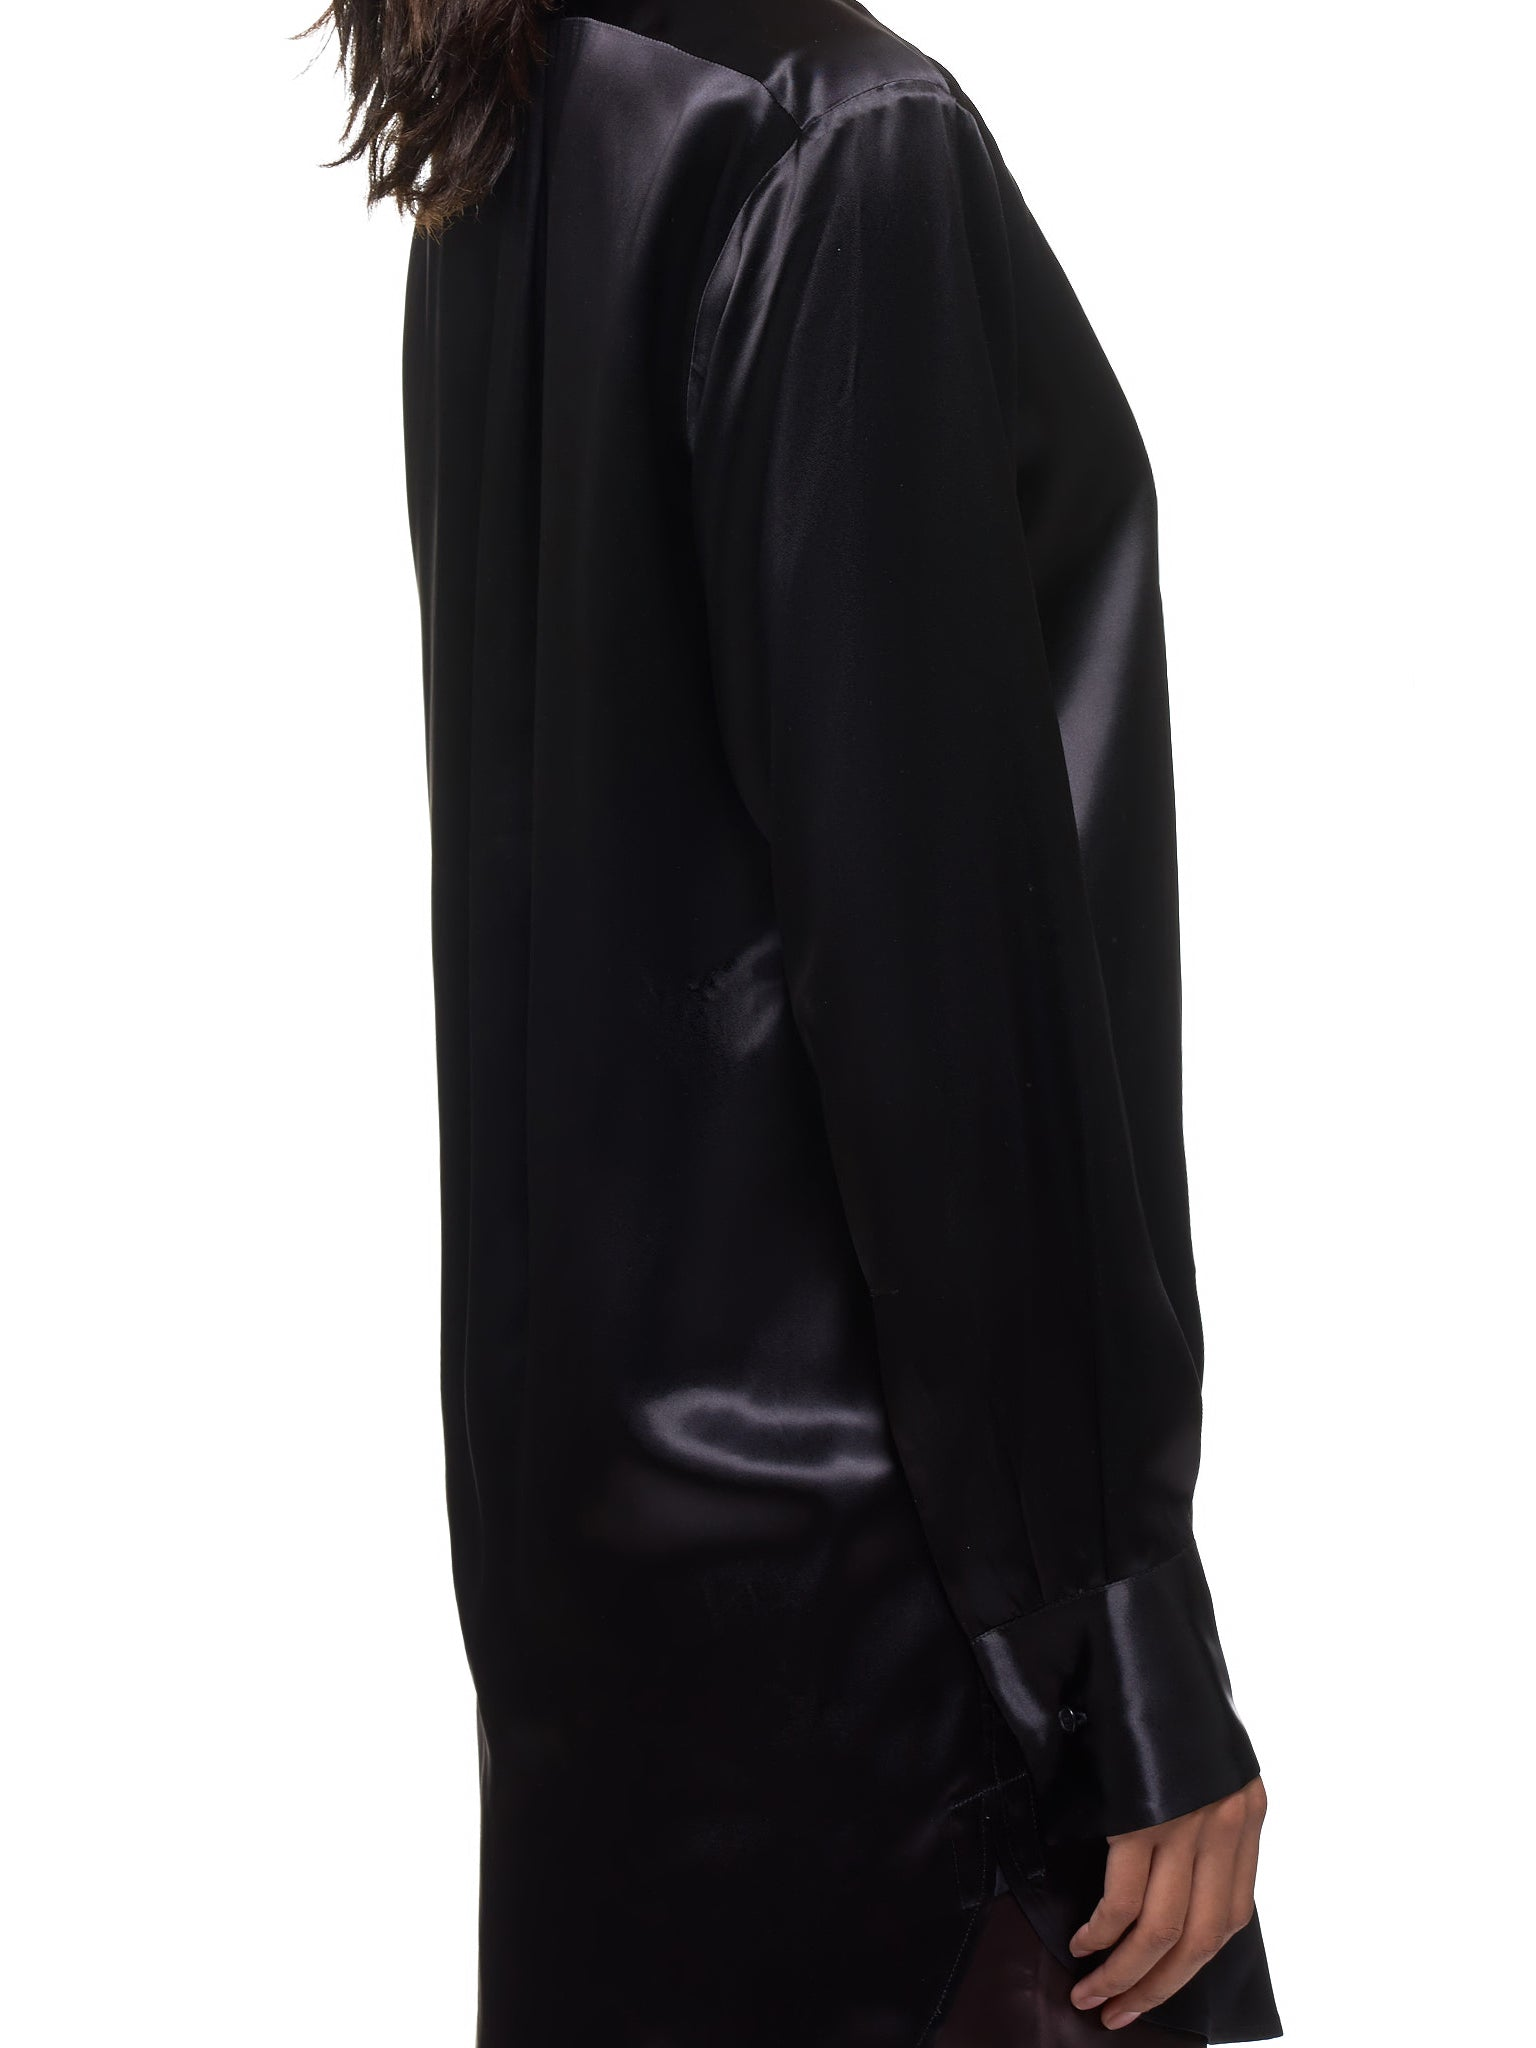 Lacquered Satin Shirt (589202VKFN0-1000-BLACK)